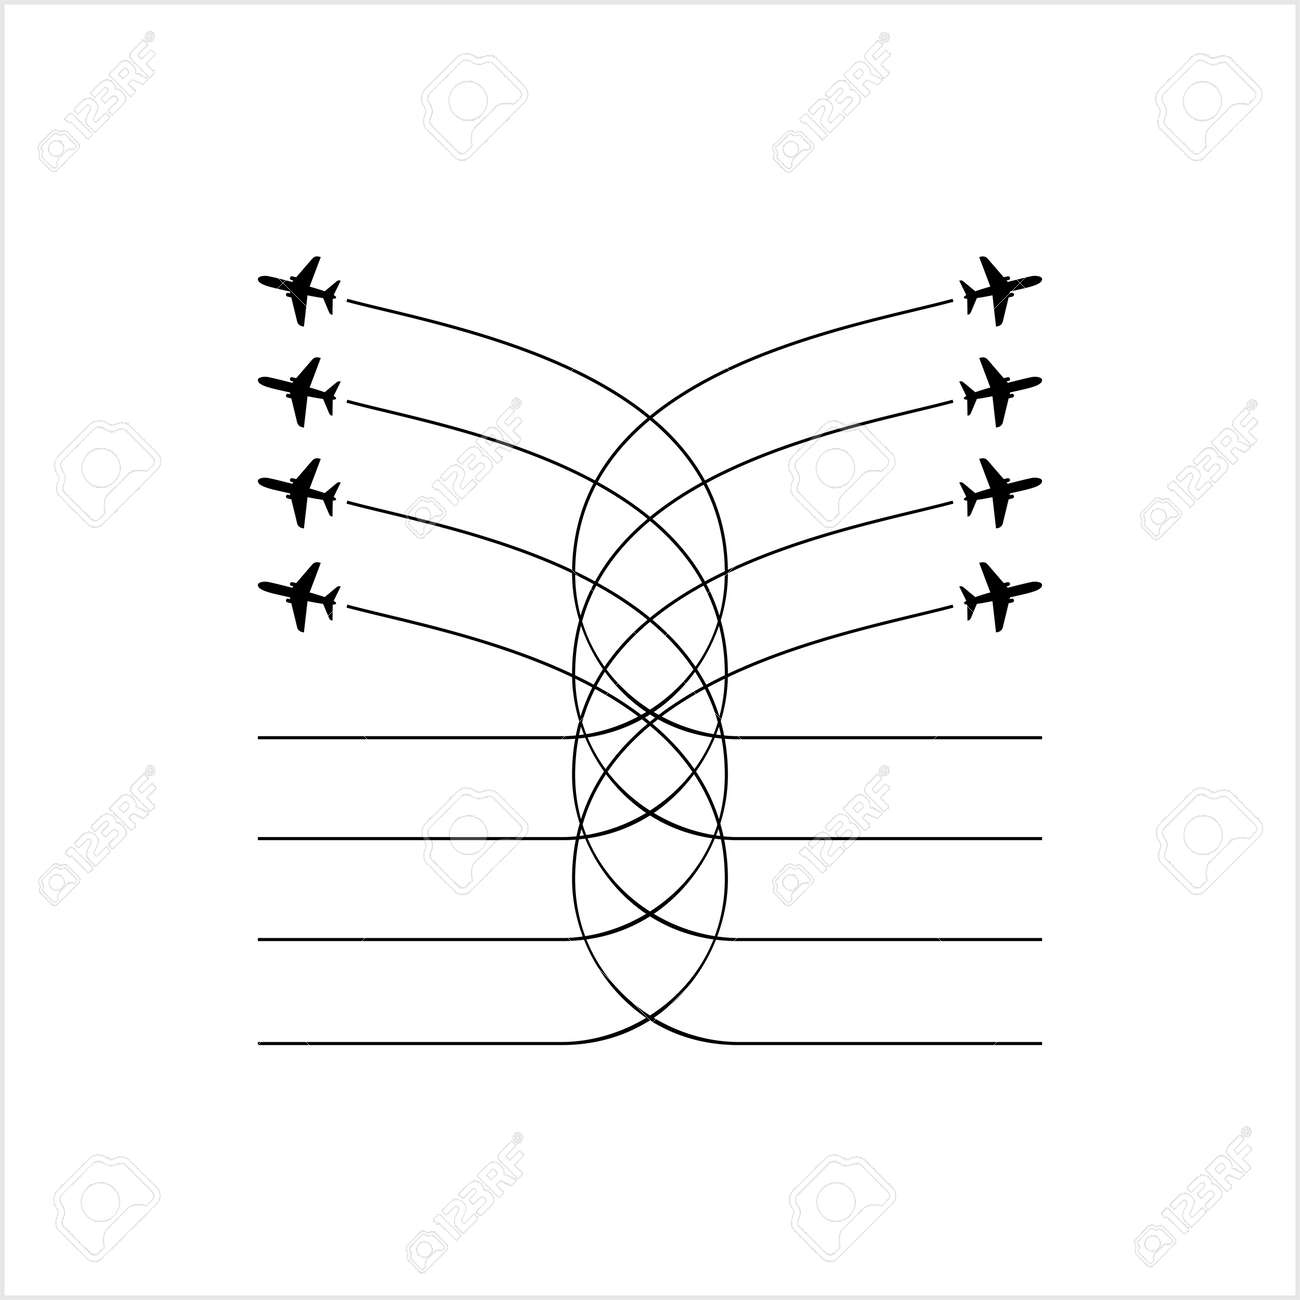 Airplane Flying Formation, Air Show Display, The Disciplined Flight Vector Art Illustration - 148096094